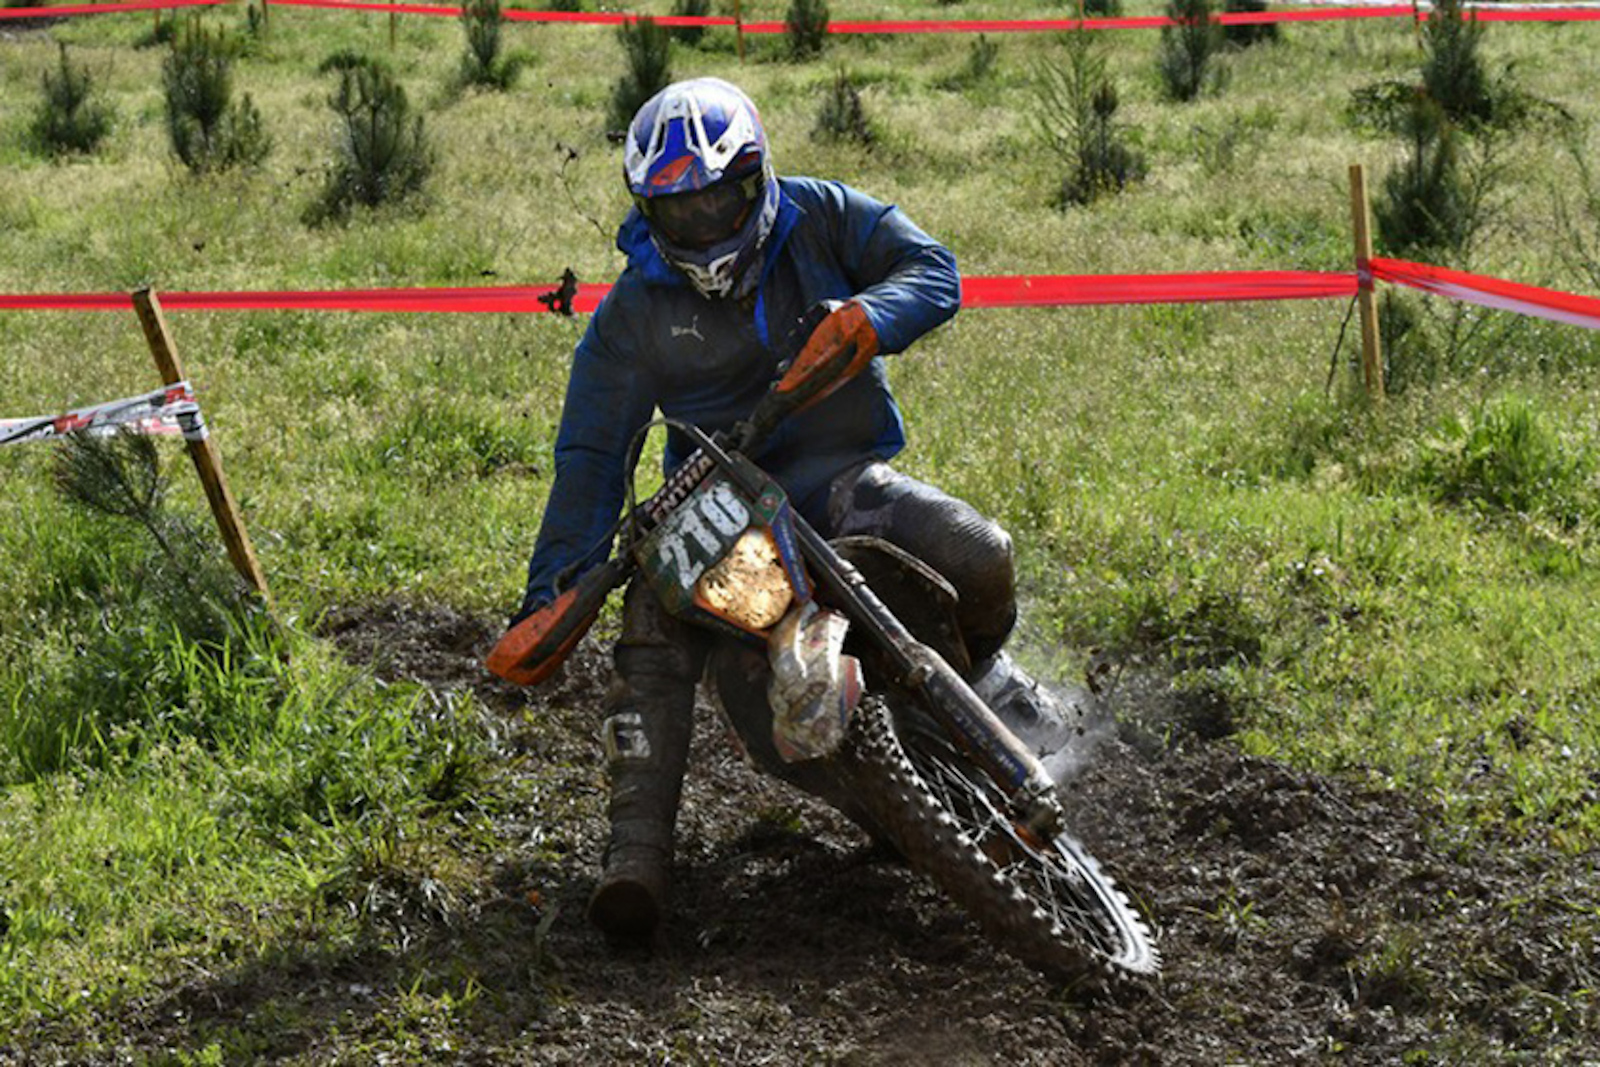 Preview: European Enduro Championship round 2 in Slovakia – Juniors setting the pace